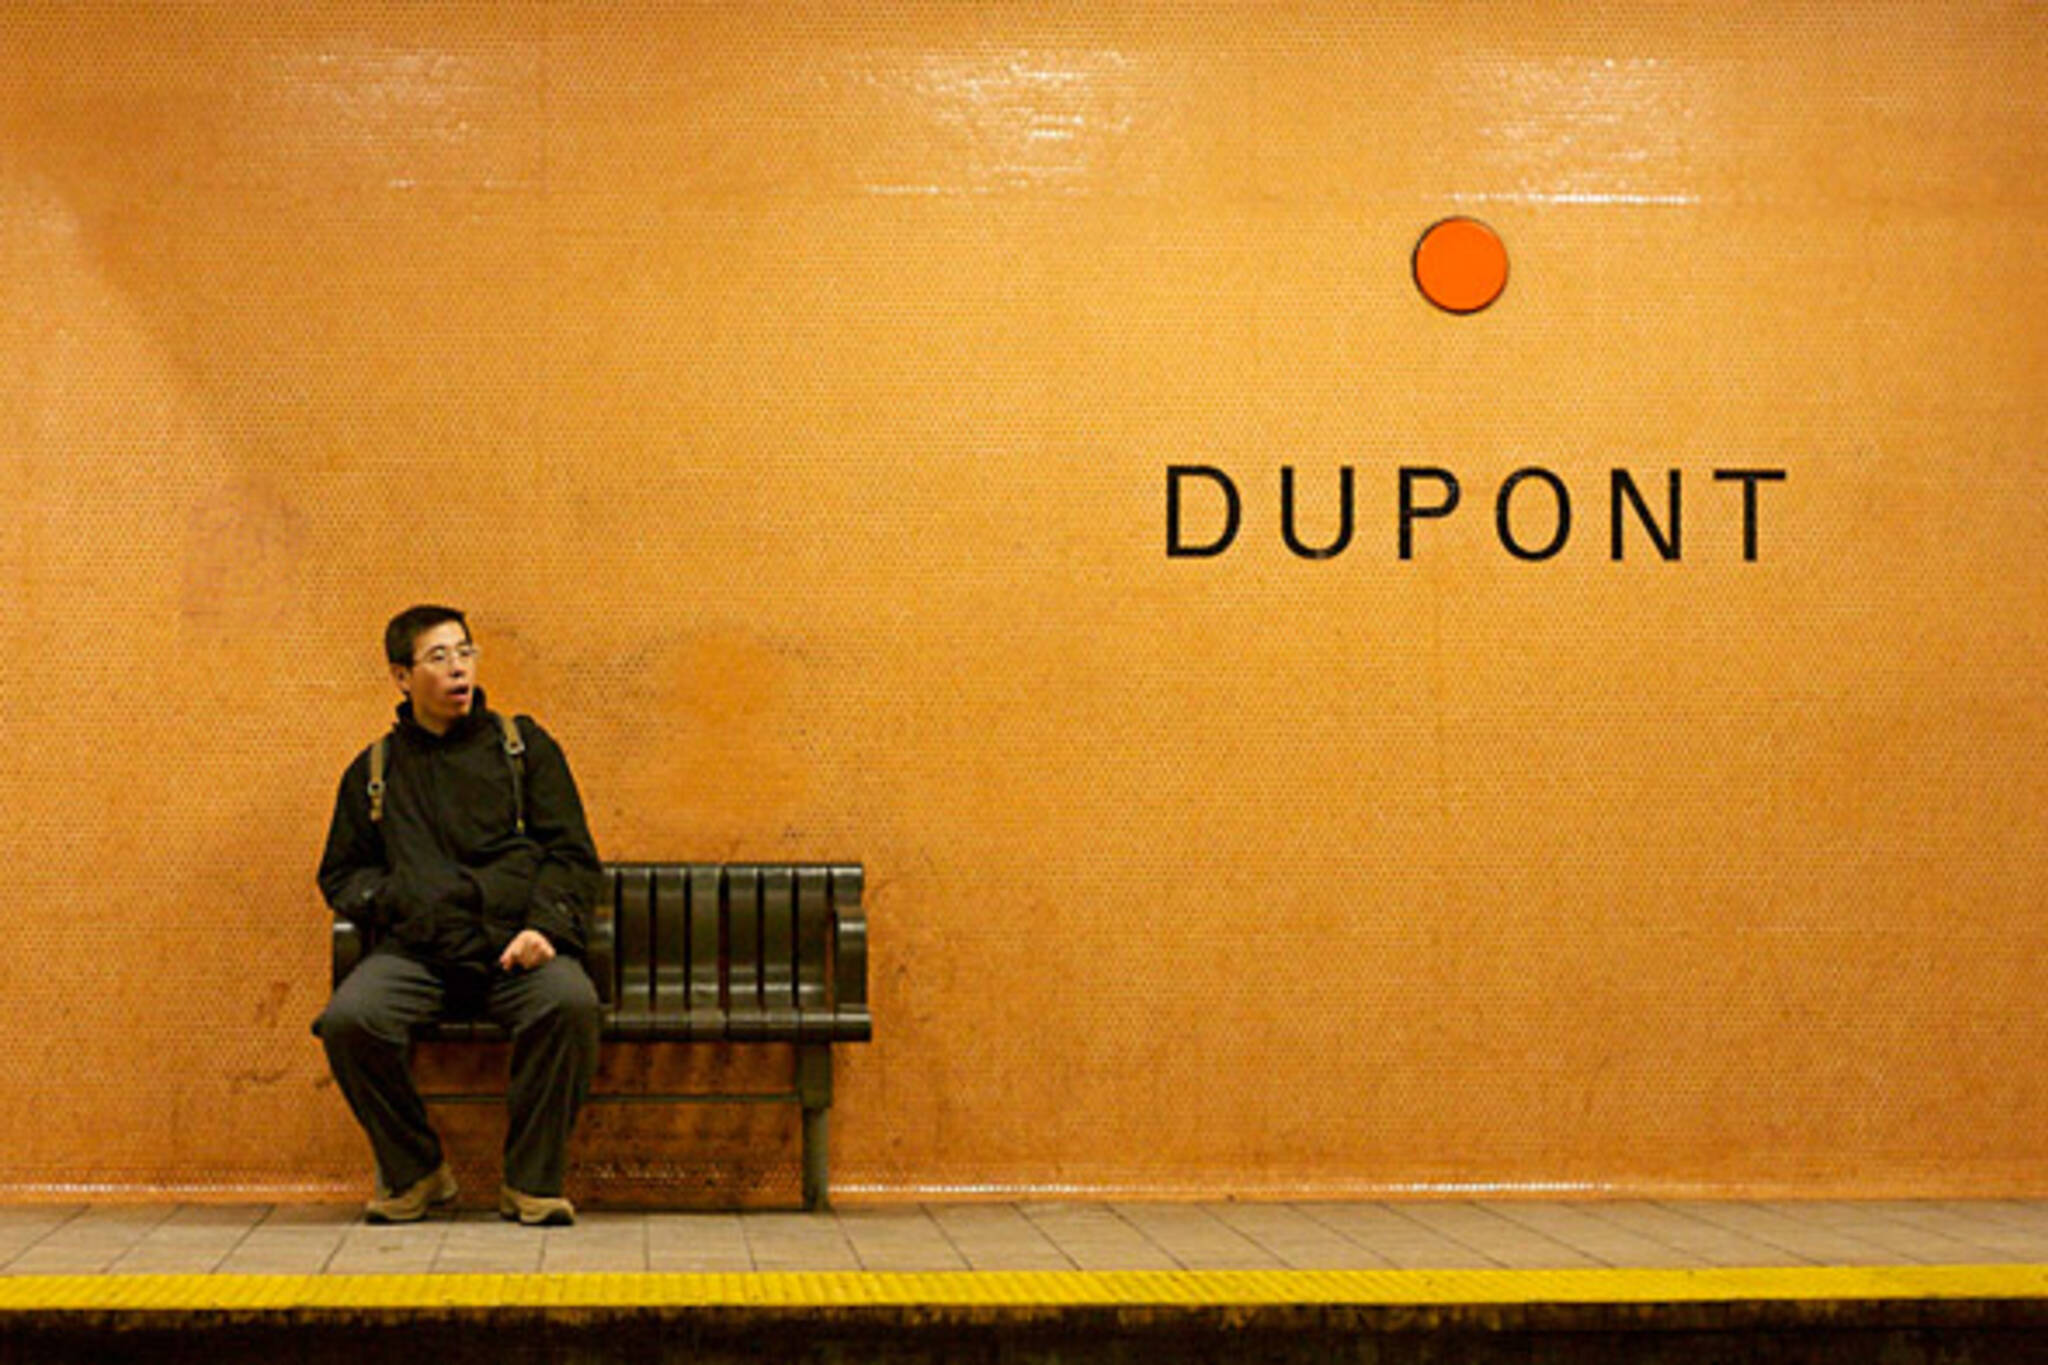 Dupont Subway Station